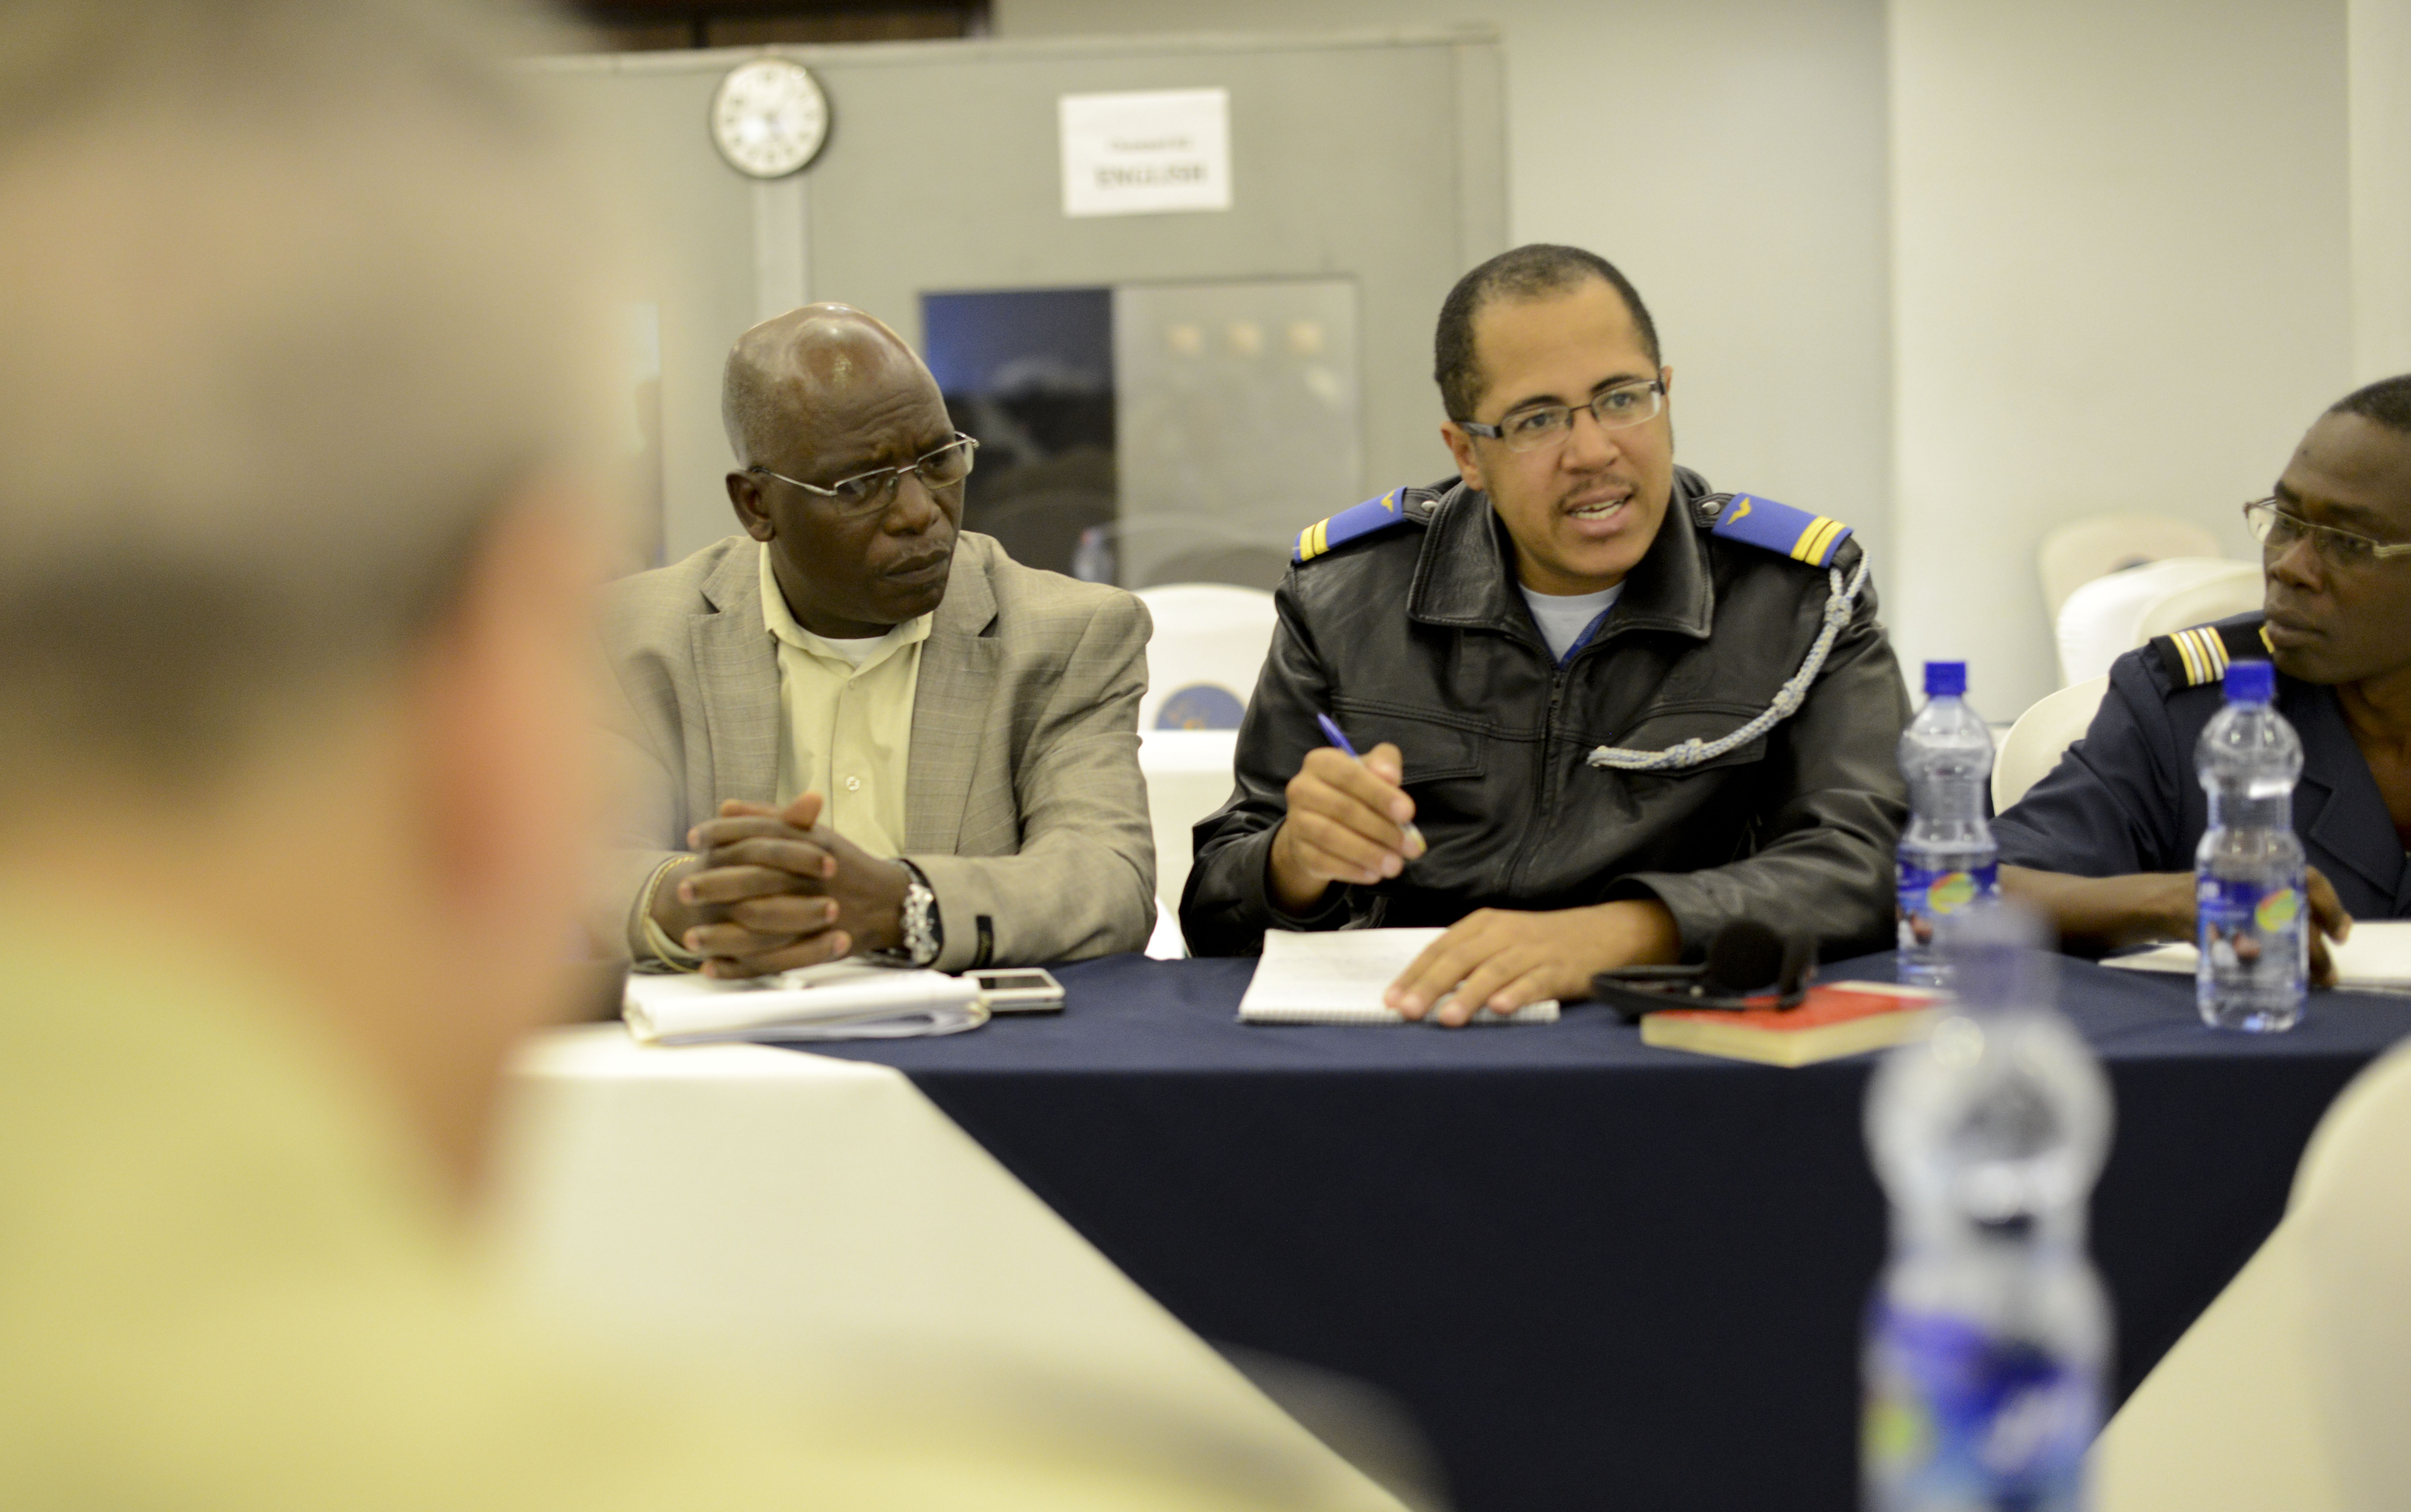 Angola Army Lt. Carlos Pederneira speaks during a small group discussion during the Africa Logistics Forum in Addis Ababa, Ethiopia, June 24, 2015. Logisticians from 36 African nations and international partners attended the forum.